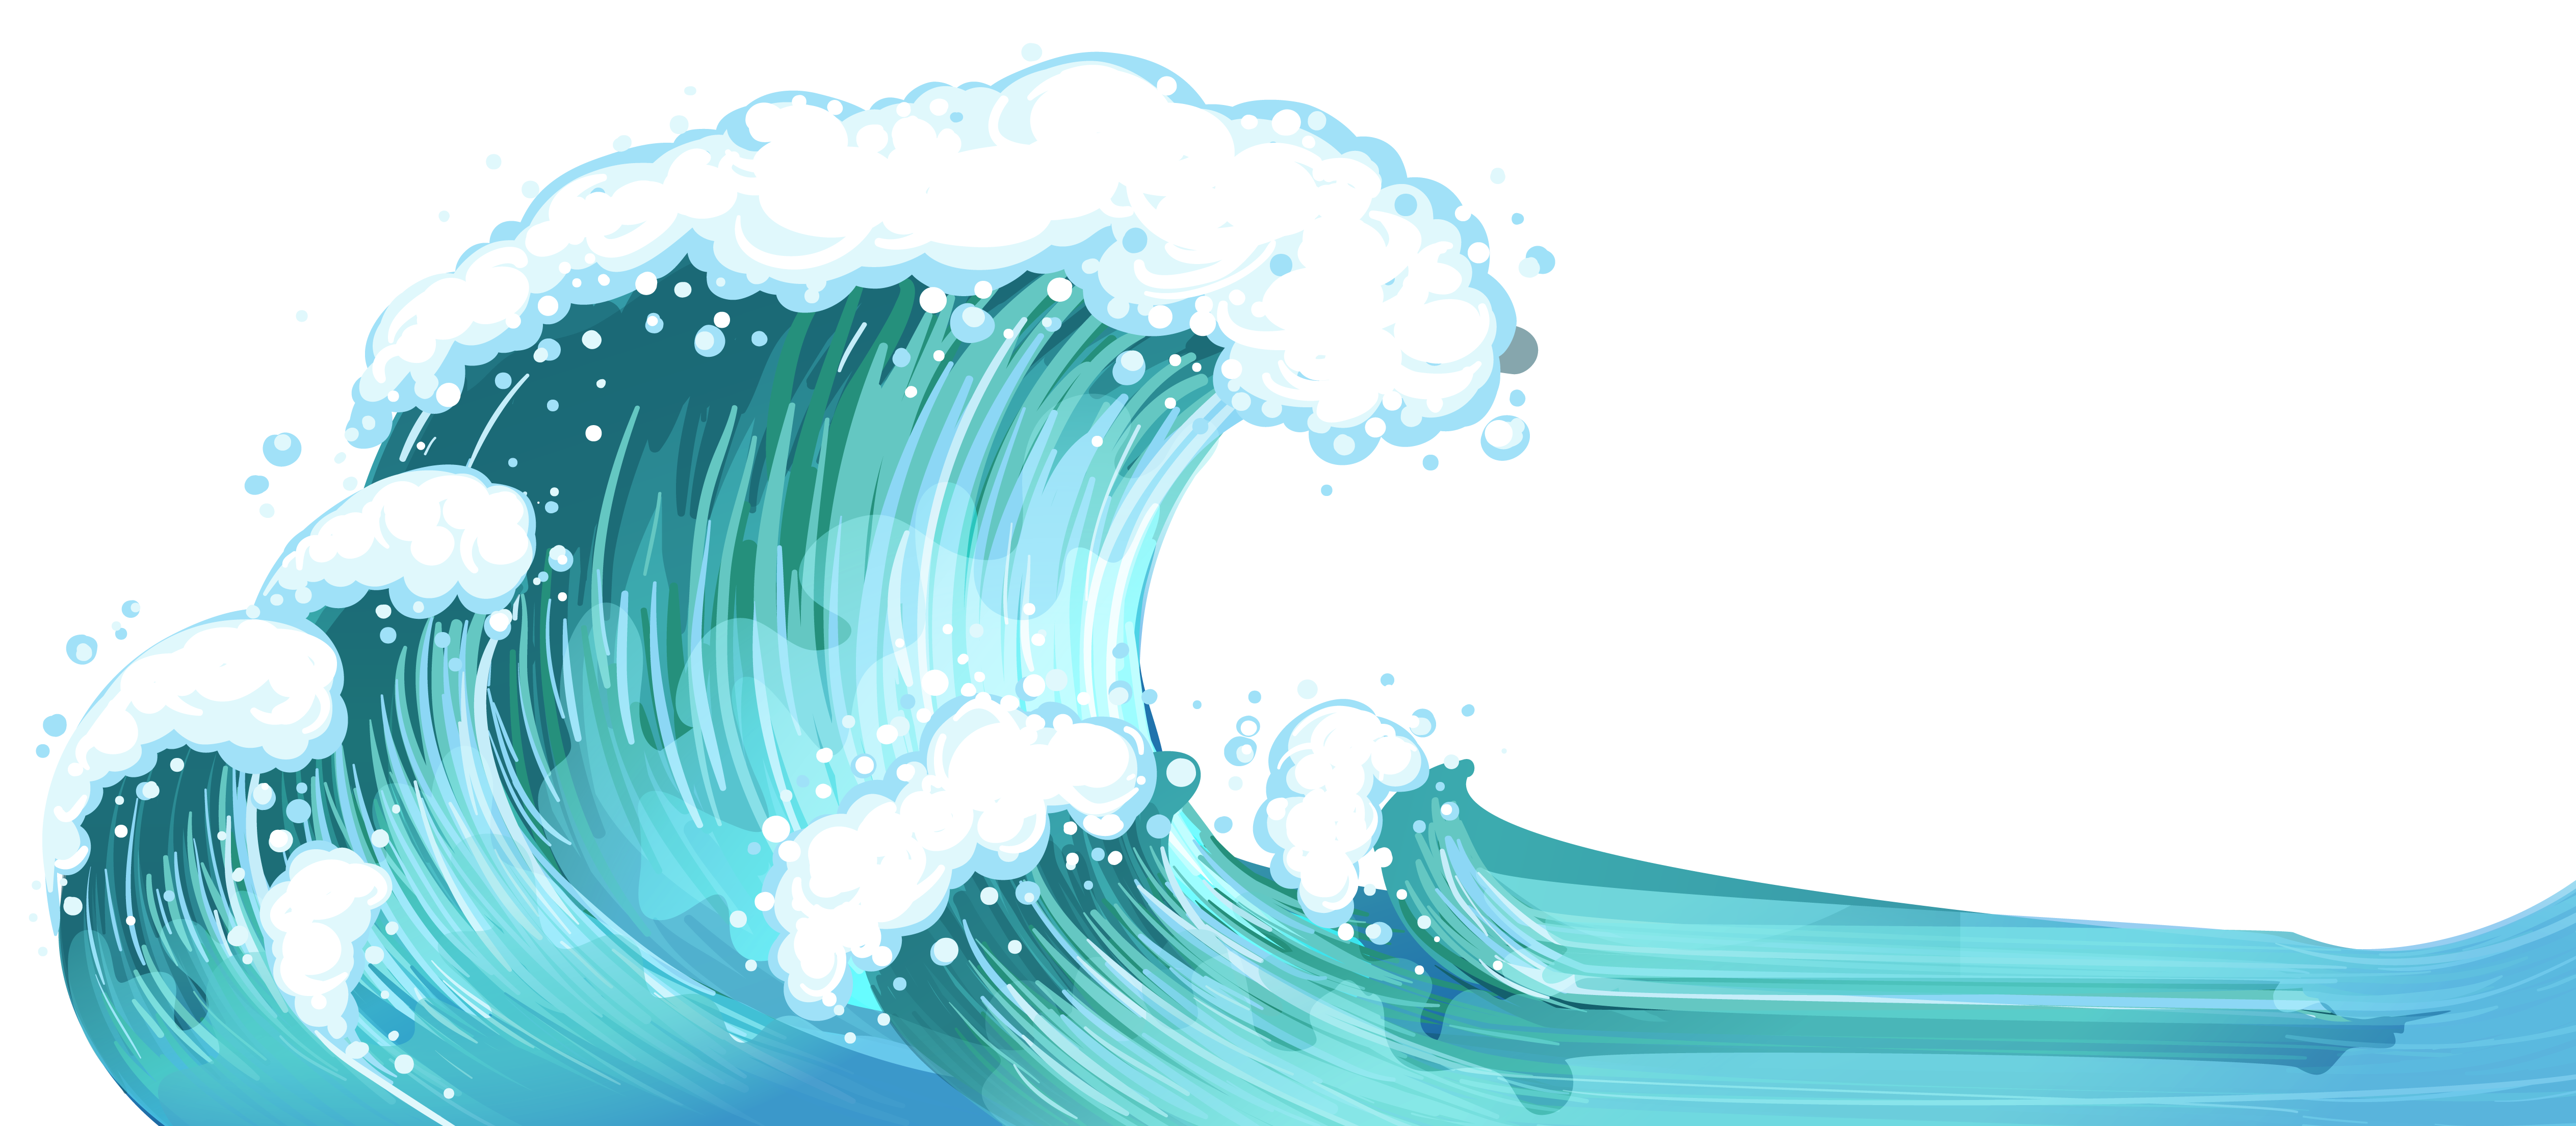 clip art library download Transparent wave background.  collection of waves